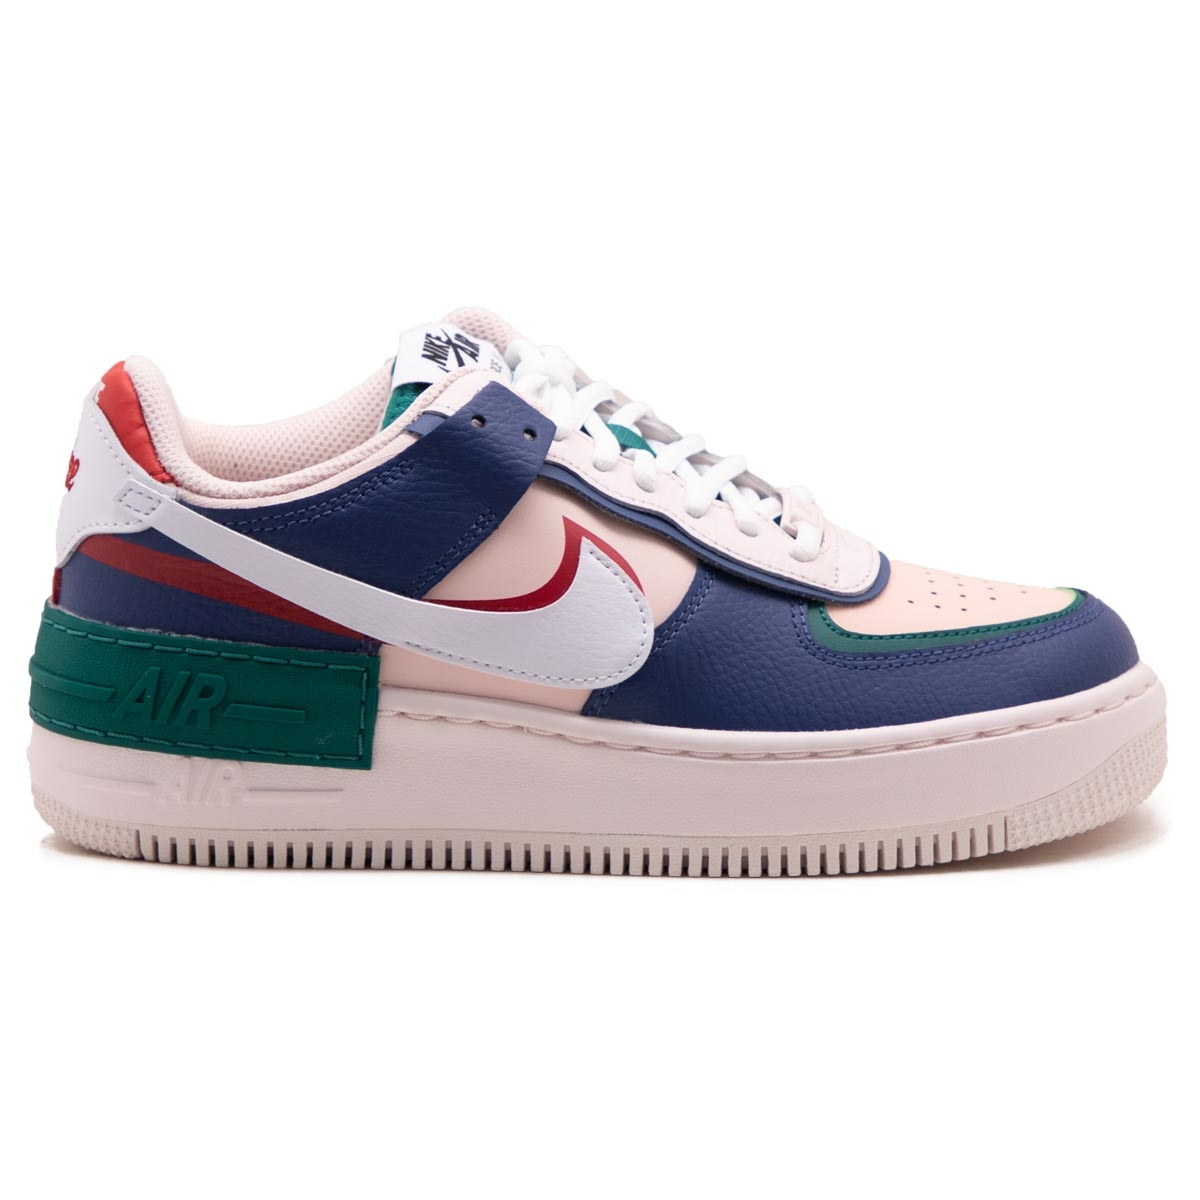 Acquire > air force 1 nike id |